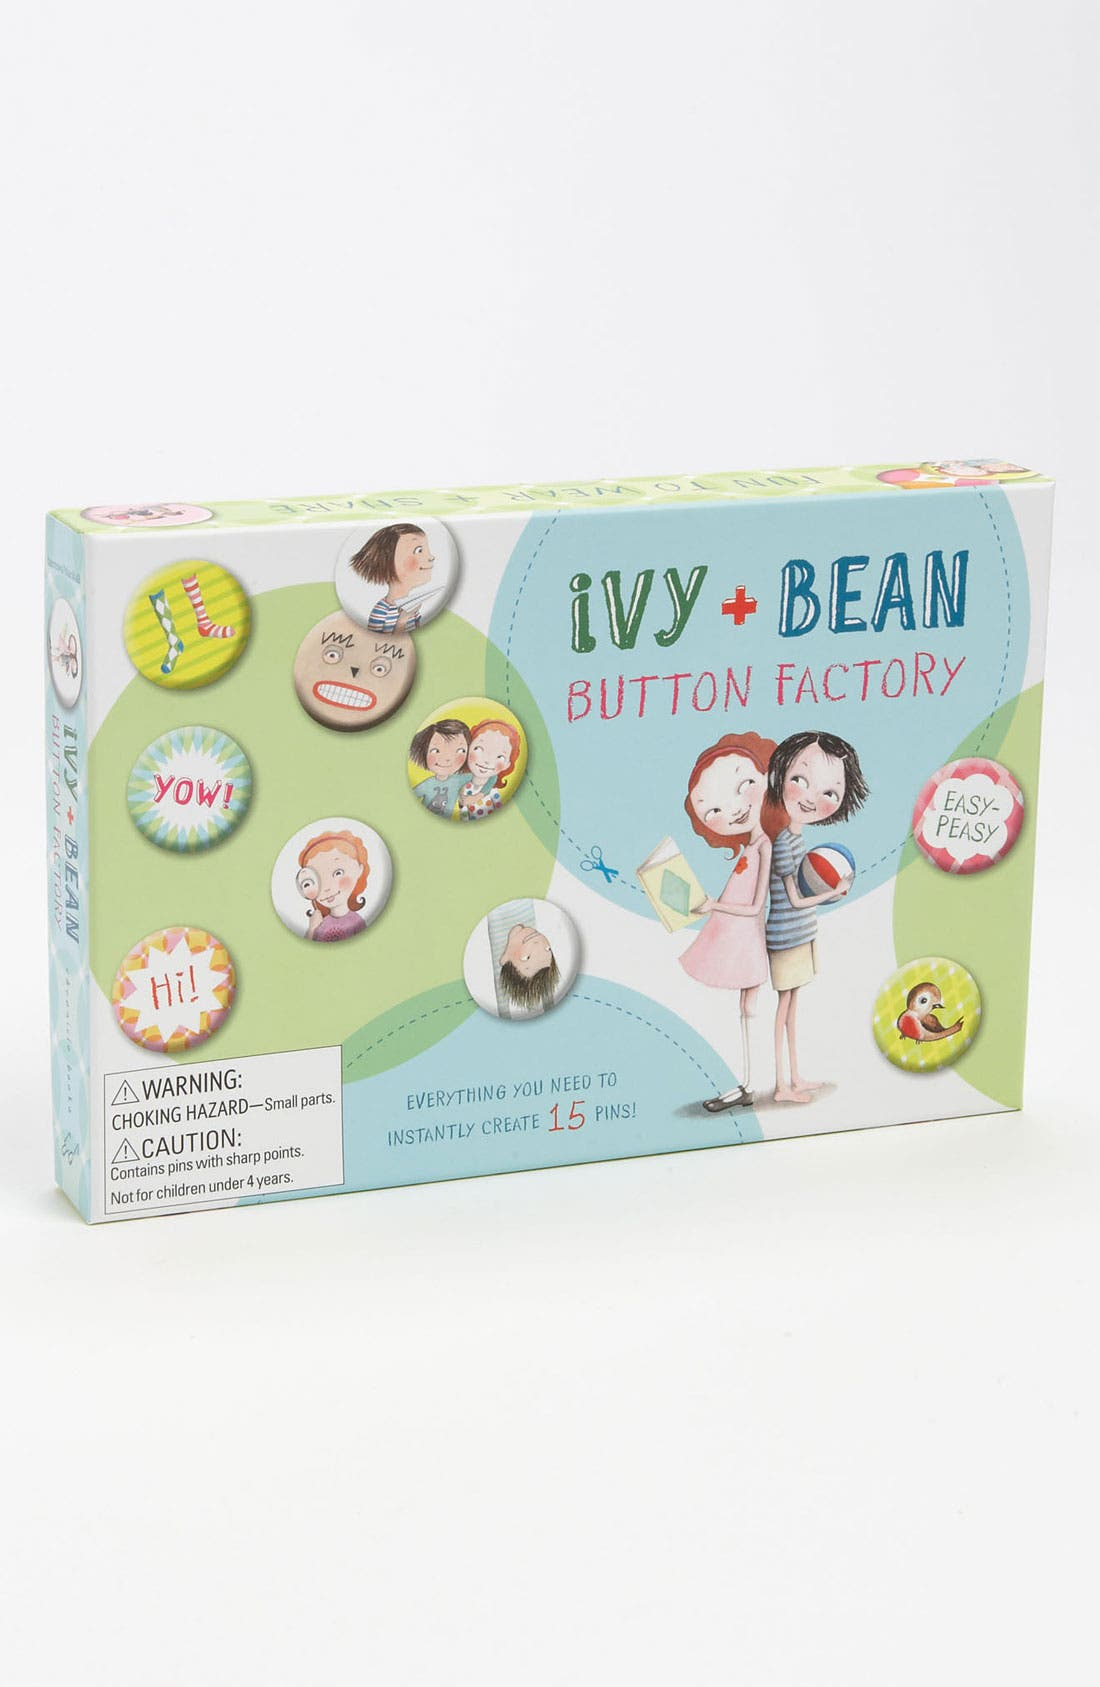 Alternate Image 1 Selected - Annie Barrows & Sophie Blackall 'Ivy + Bean' Button Factory